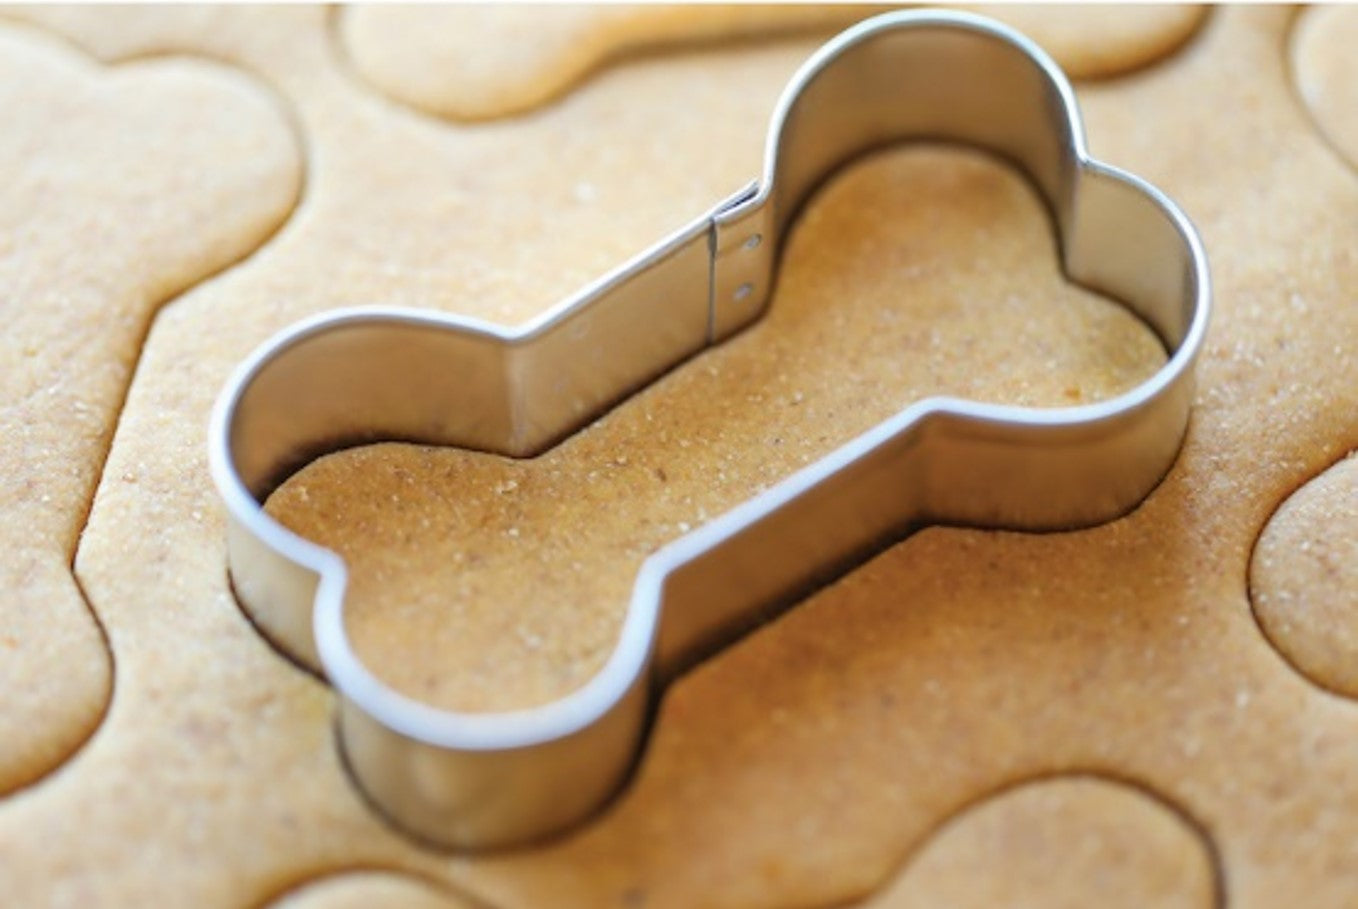 homemade peanut butter cookies for dogs with bone shaped cookie cutter from damndelicious.net